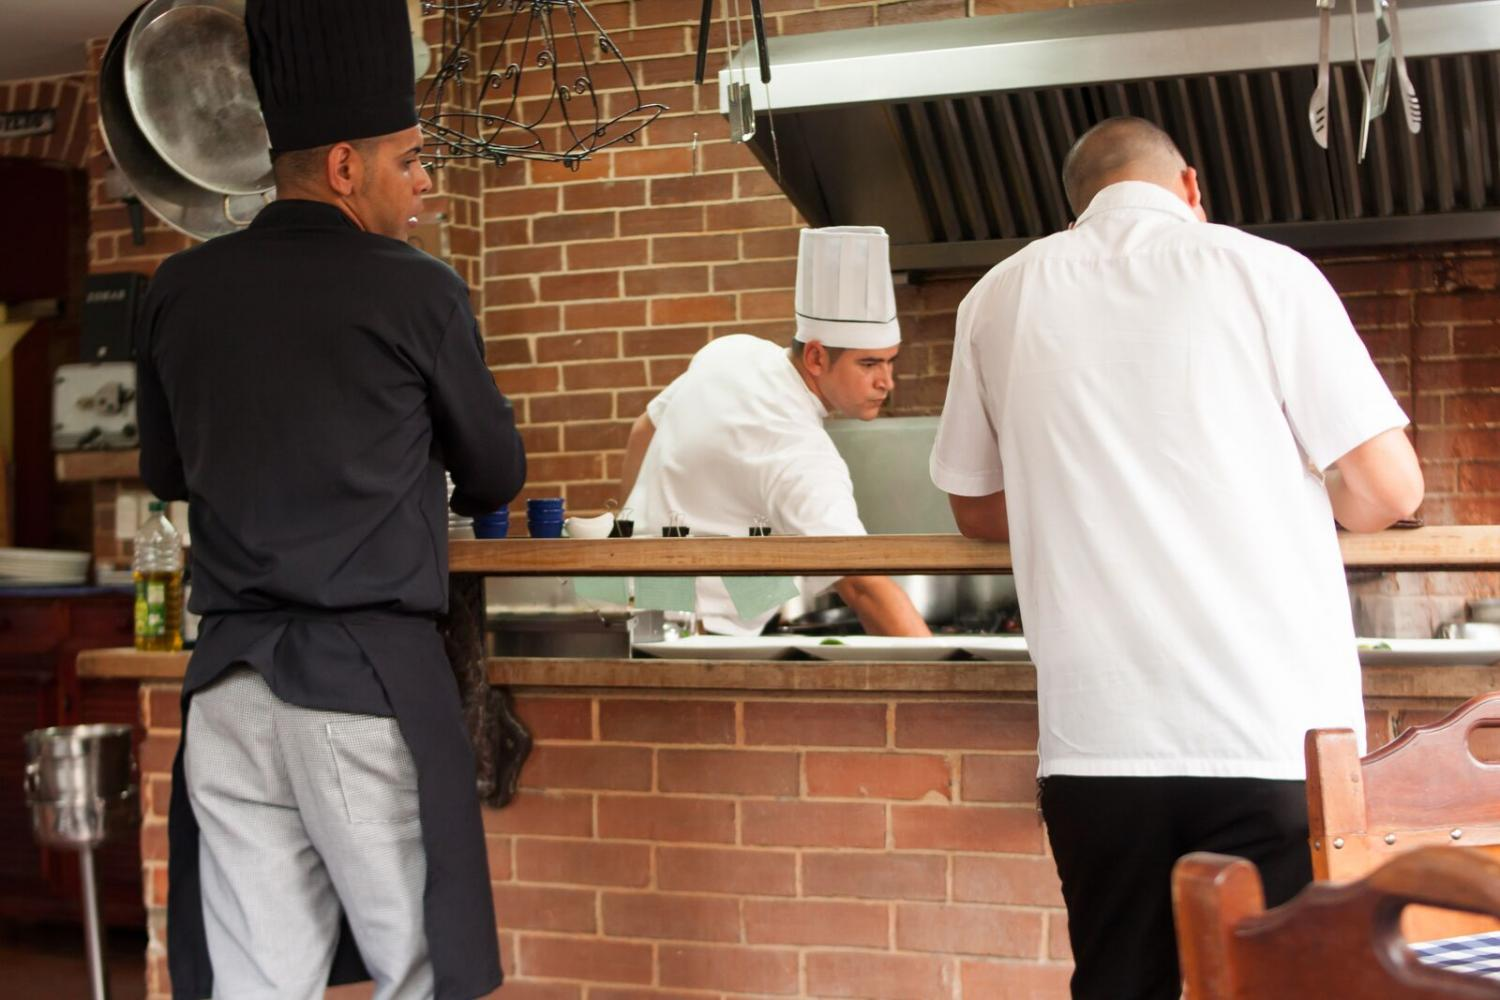 Chefs+and+a+waiter+prepping+plates+to+deliver+to+customers+eating+at+El+Idilio.